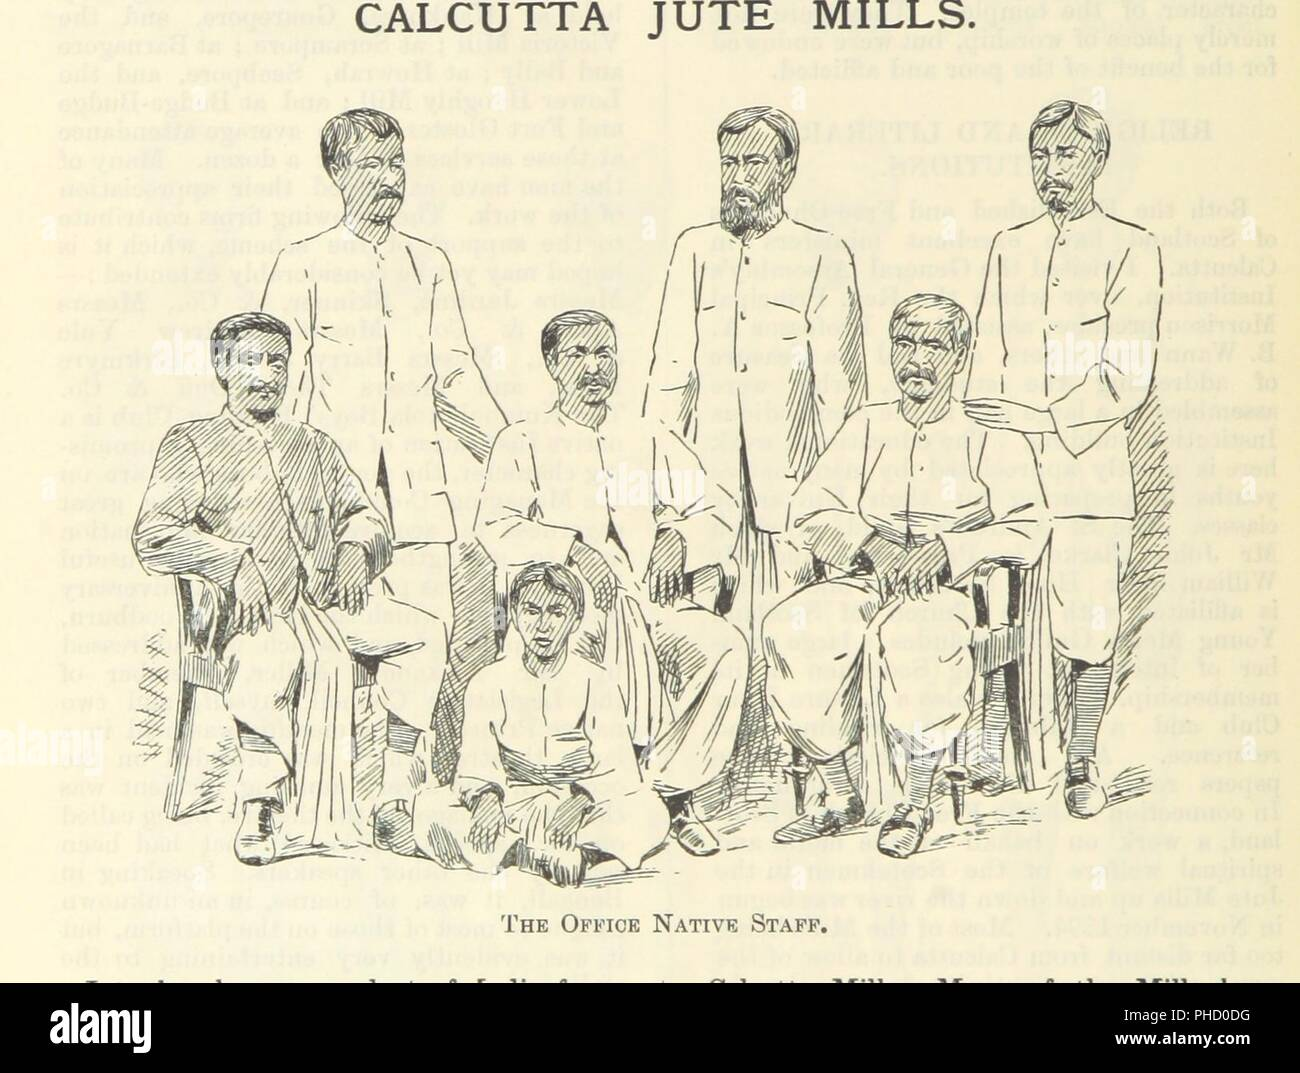 """Image  from page 106 of 'Letters from India and Ceylon, including the Manchester of India, the Indian Dundee, and Calcutta jute mills . 1895-96. Reprinted from the """"Dundee Advertiser.""""' . - Stock Image"""